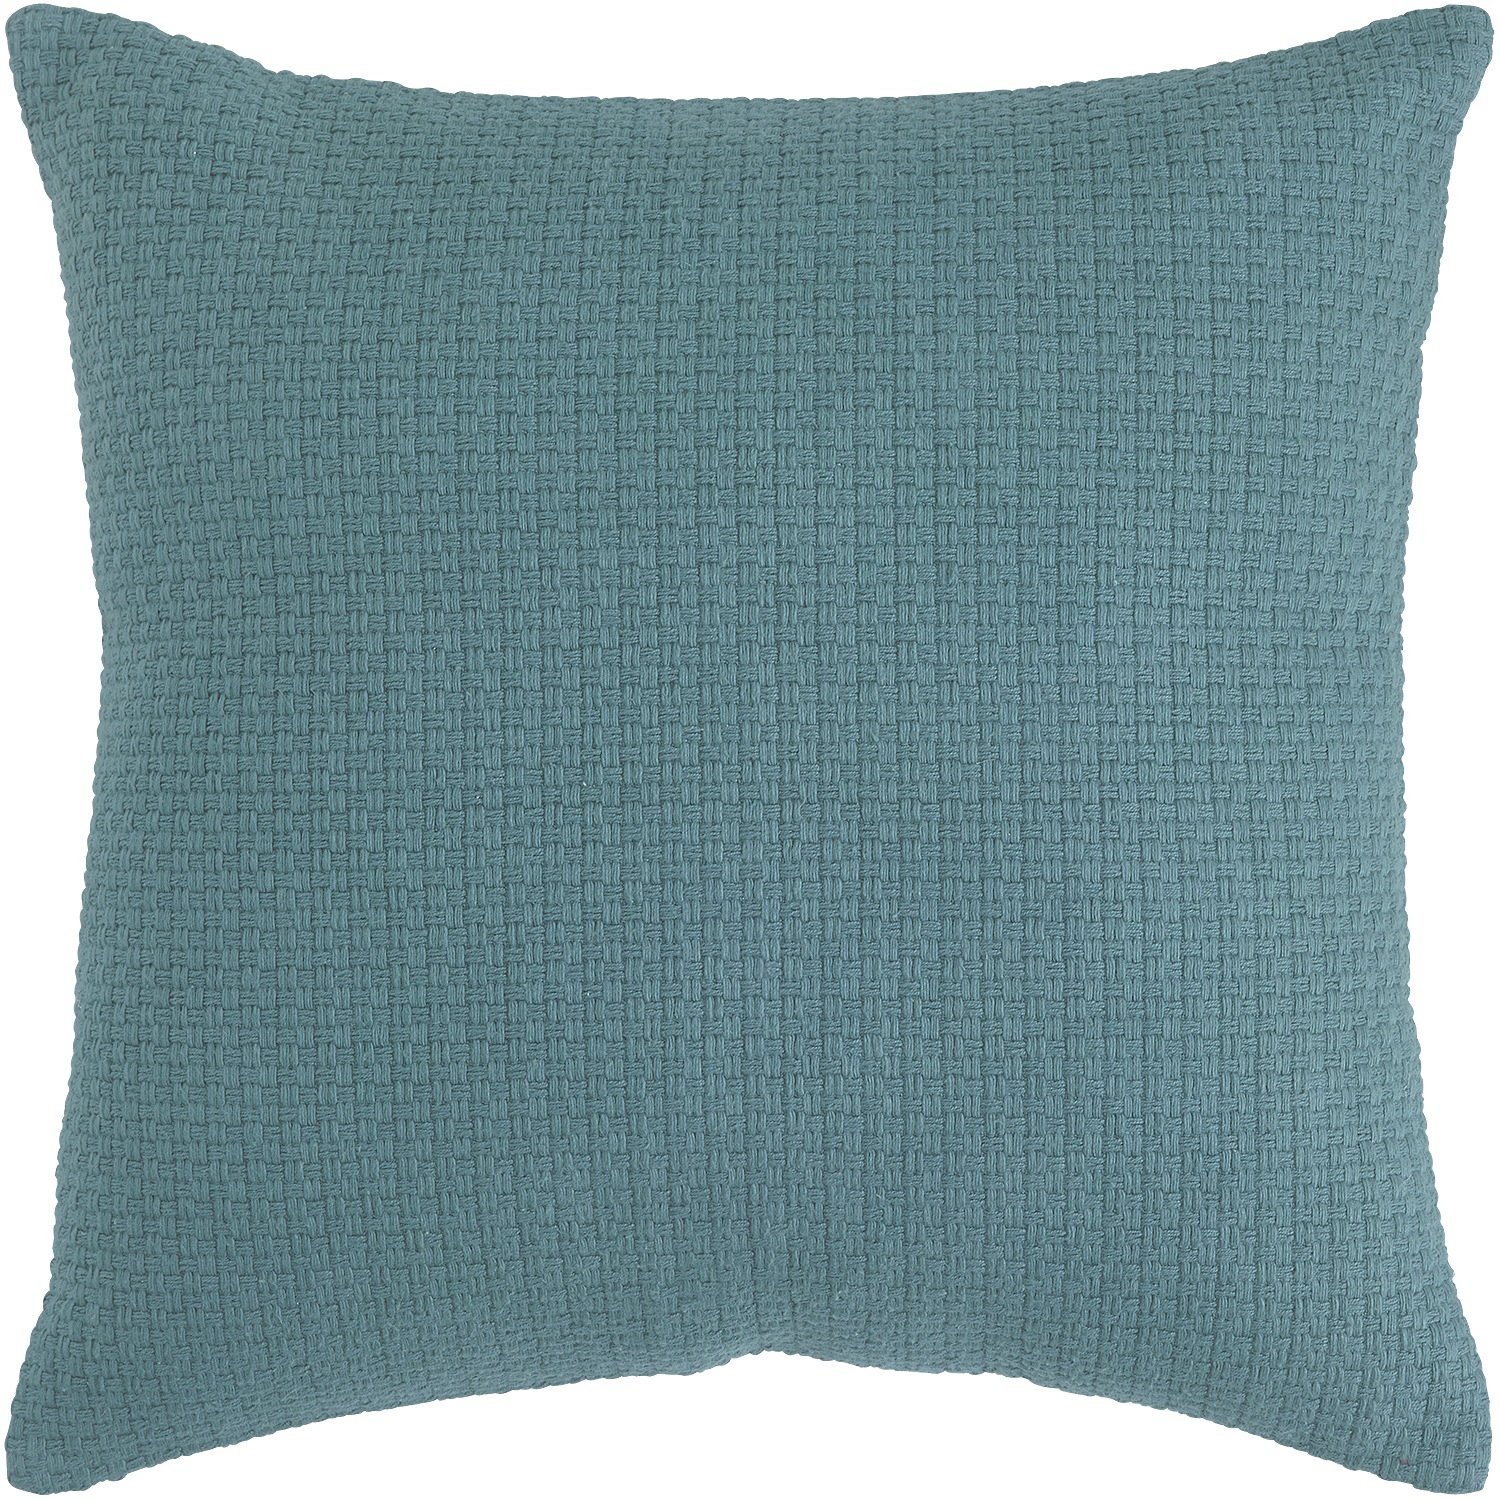 variation thumbnail of Raleigh Pillow - Teal